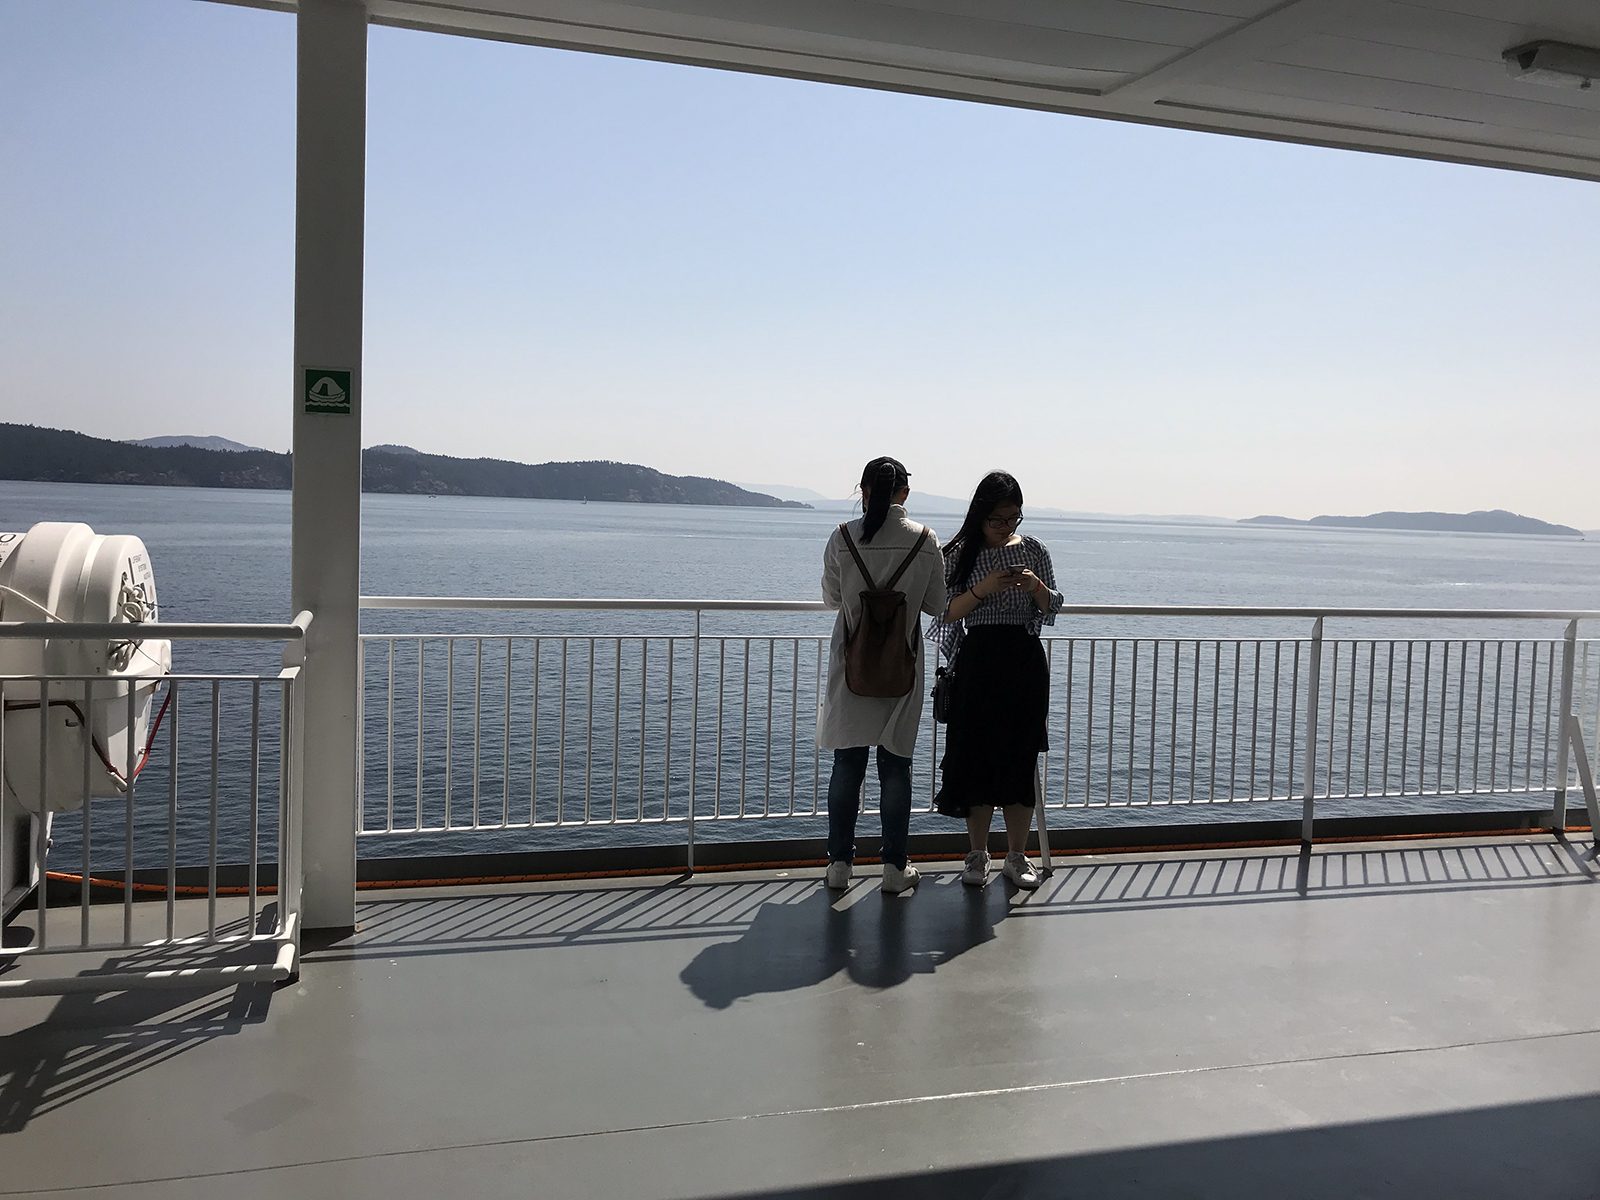 On the ferry across to Vancouver island